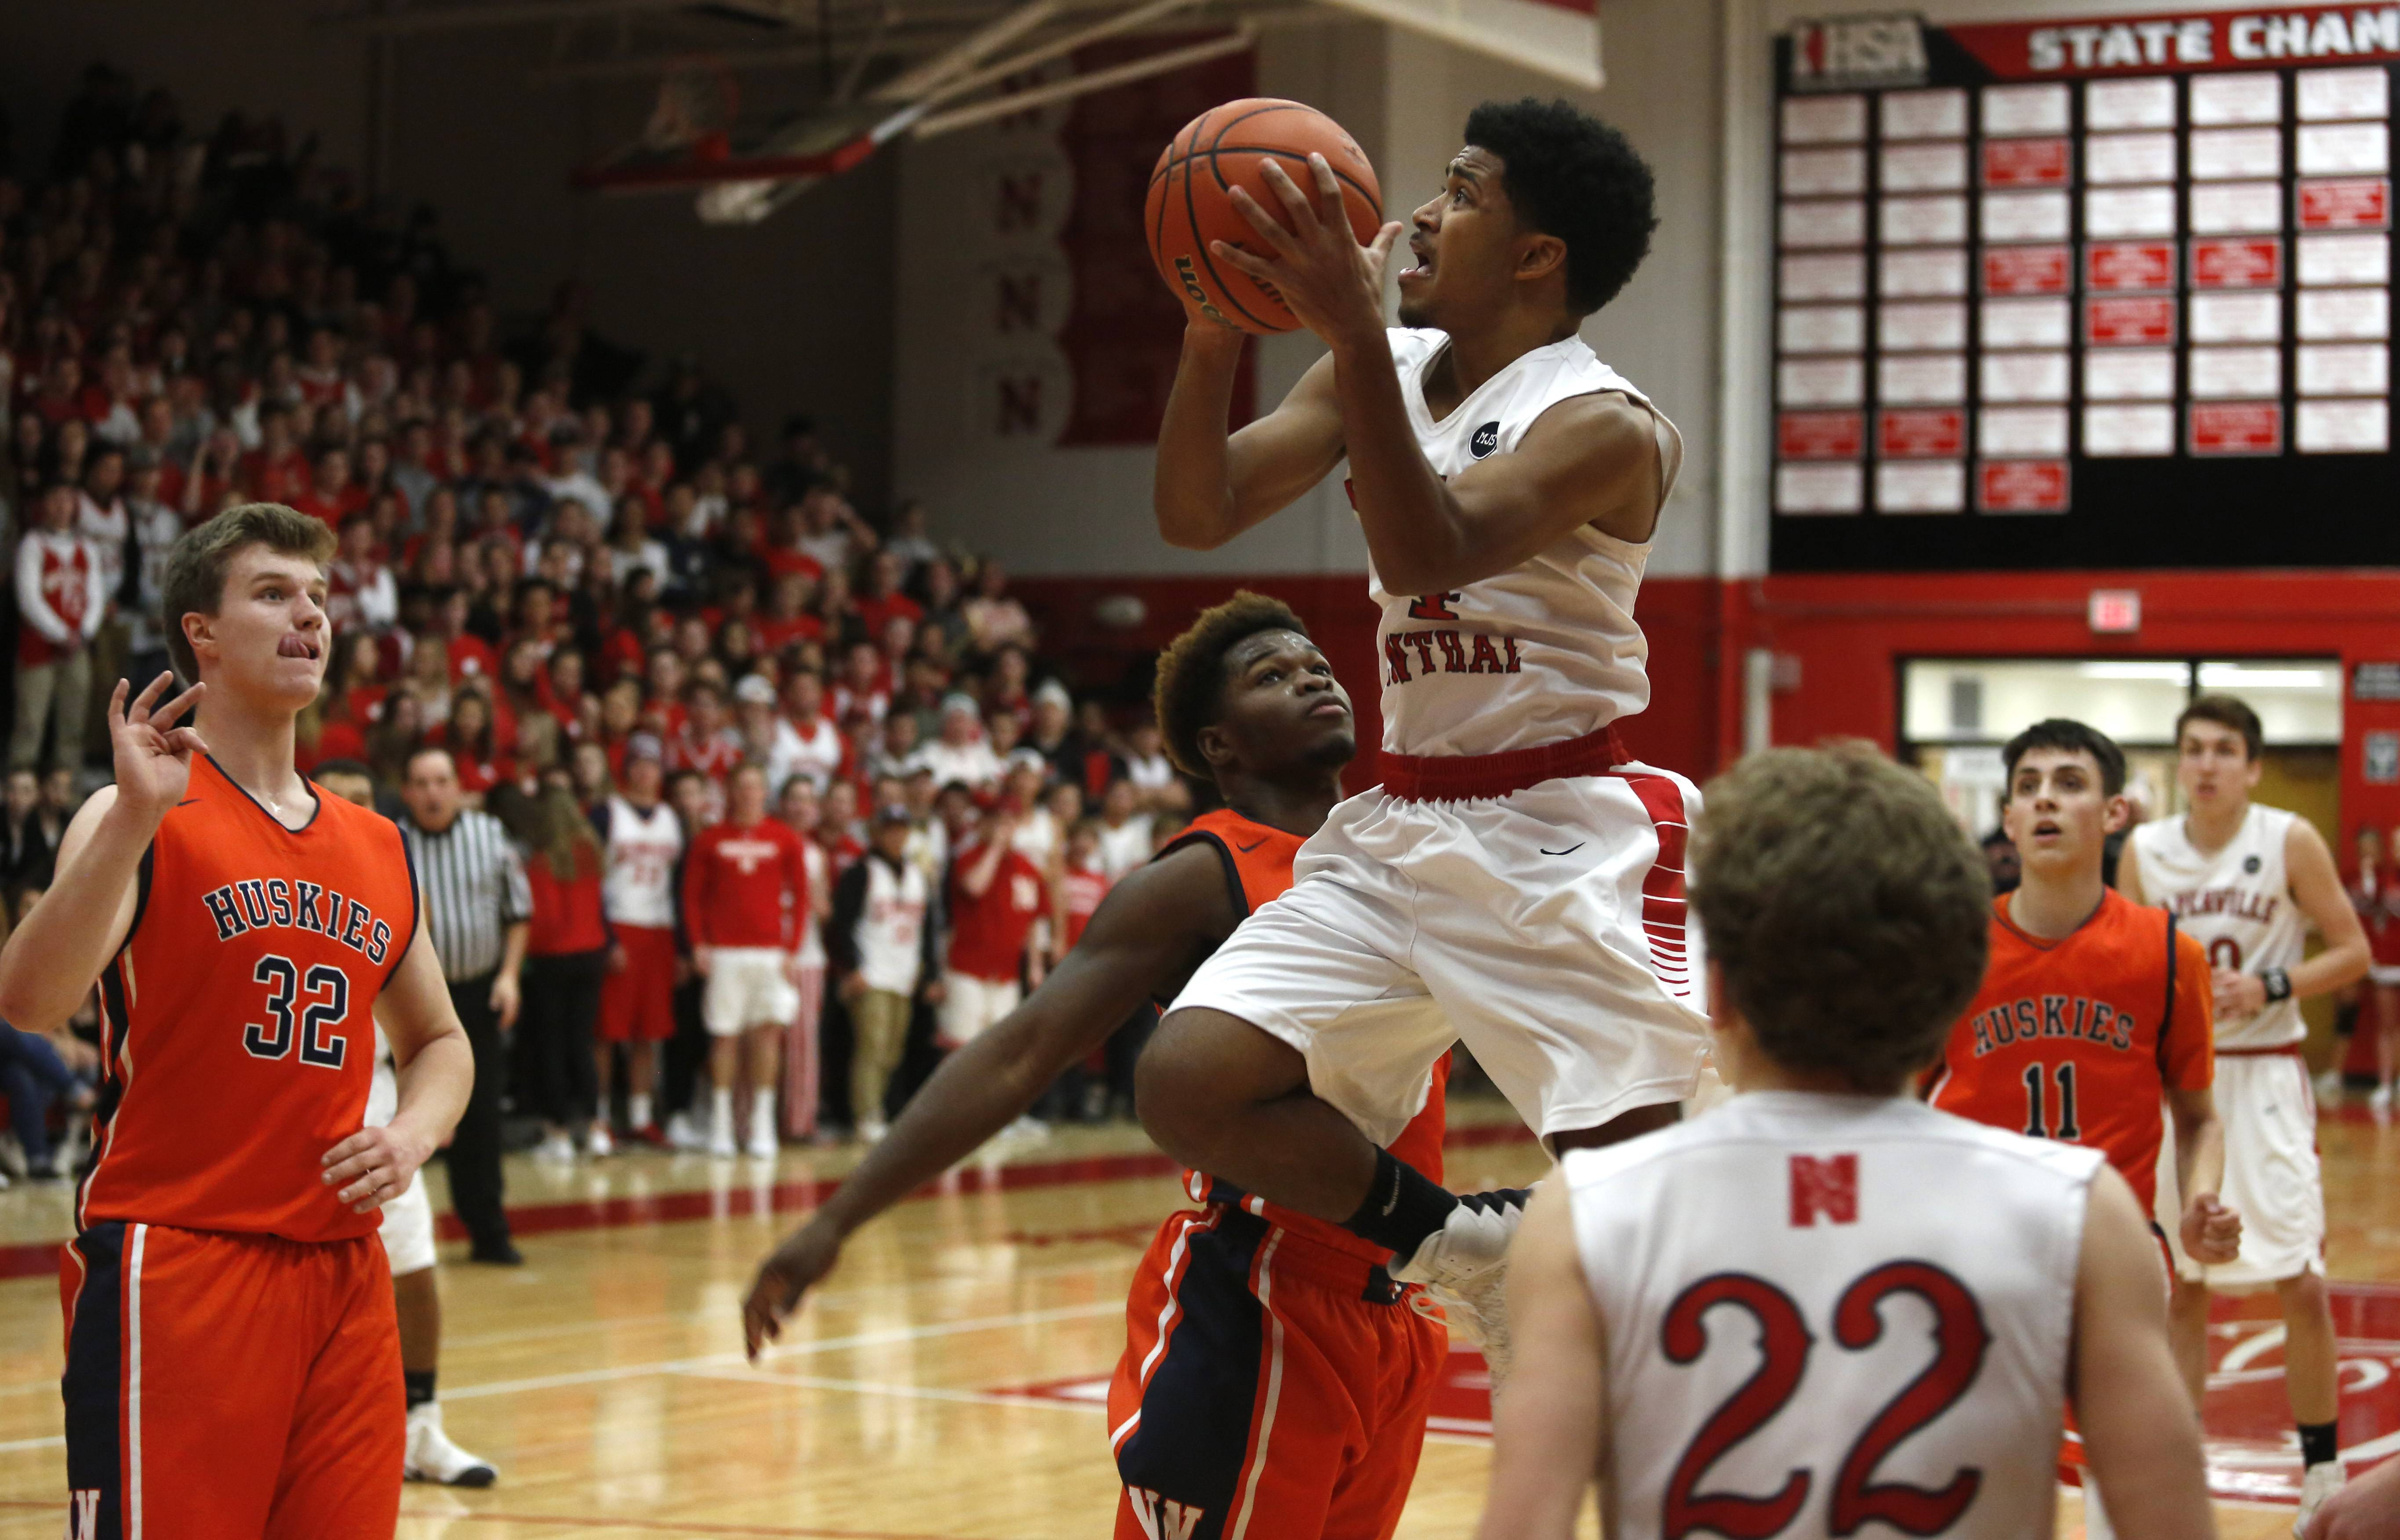 Naperville Central has been on the rise in the DuPage Valley Conference standings lately.